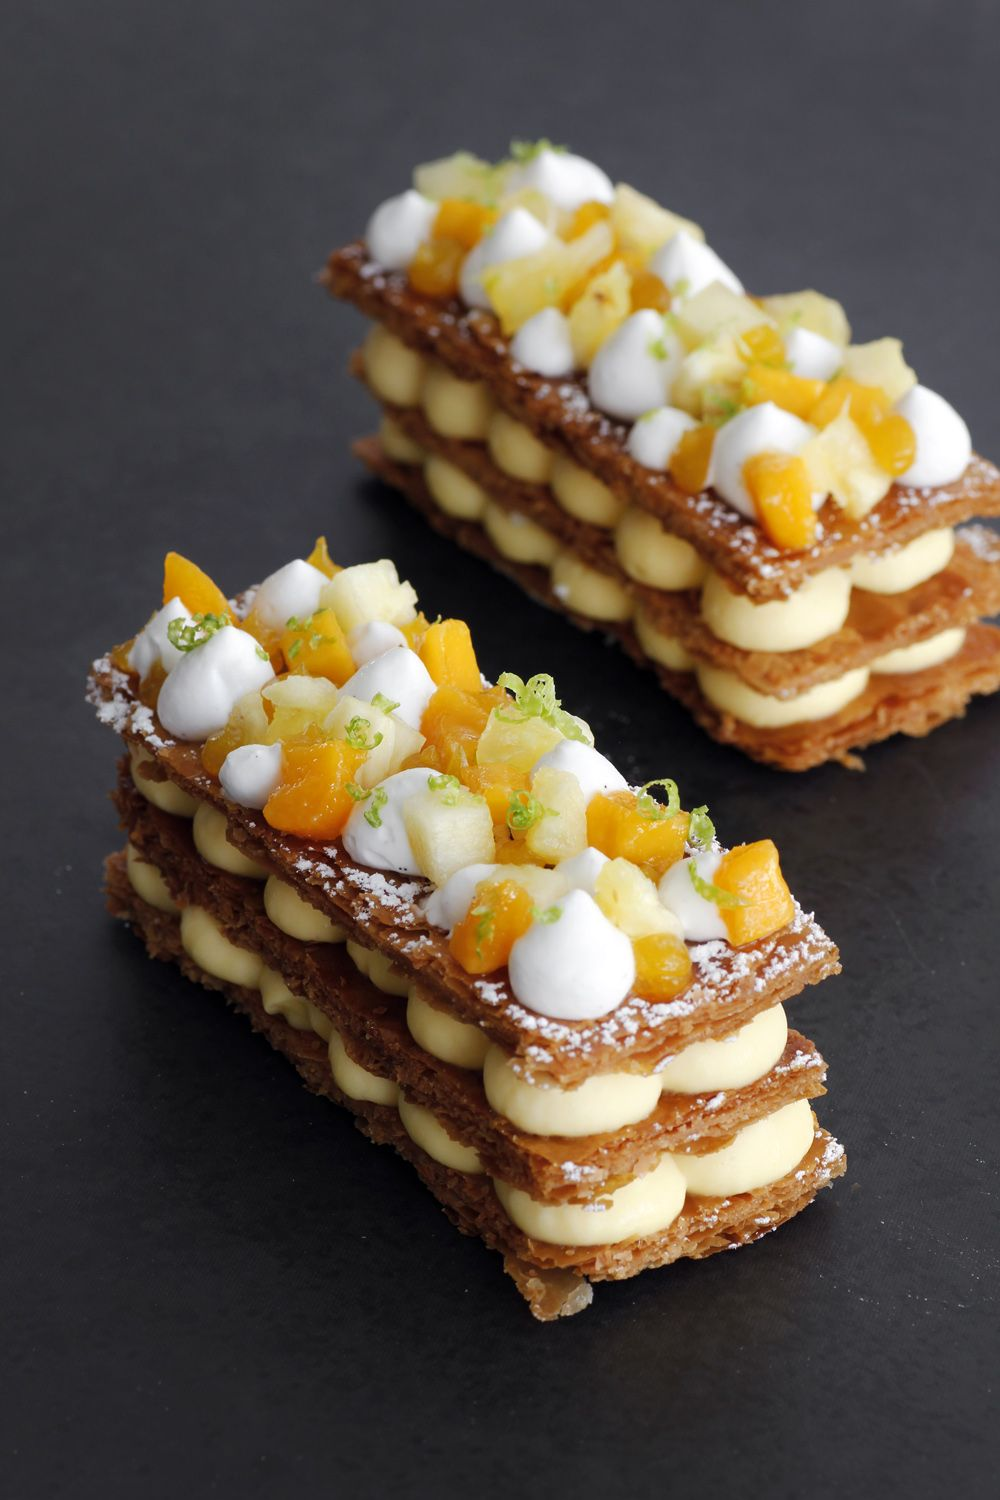 Tropical Mille-feuille